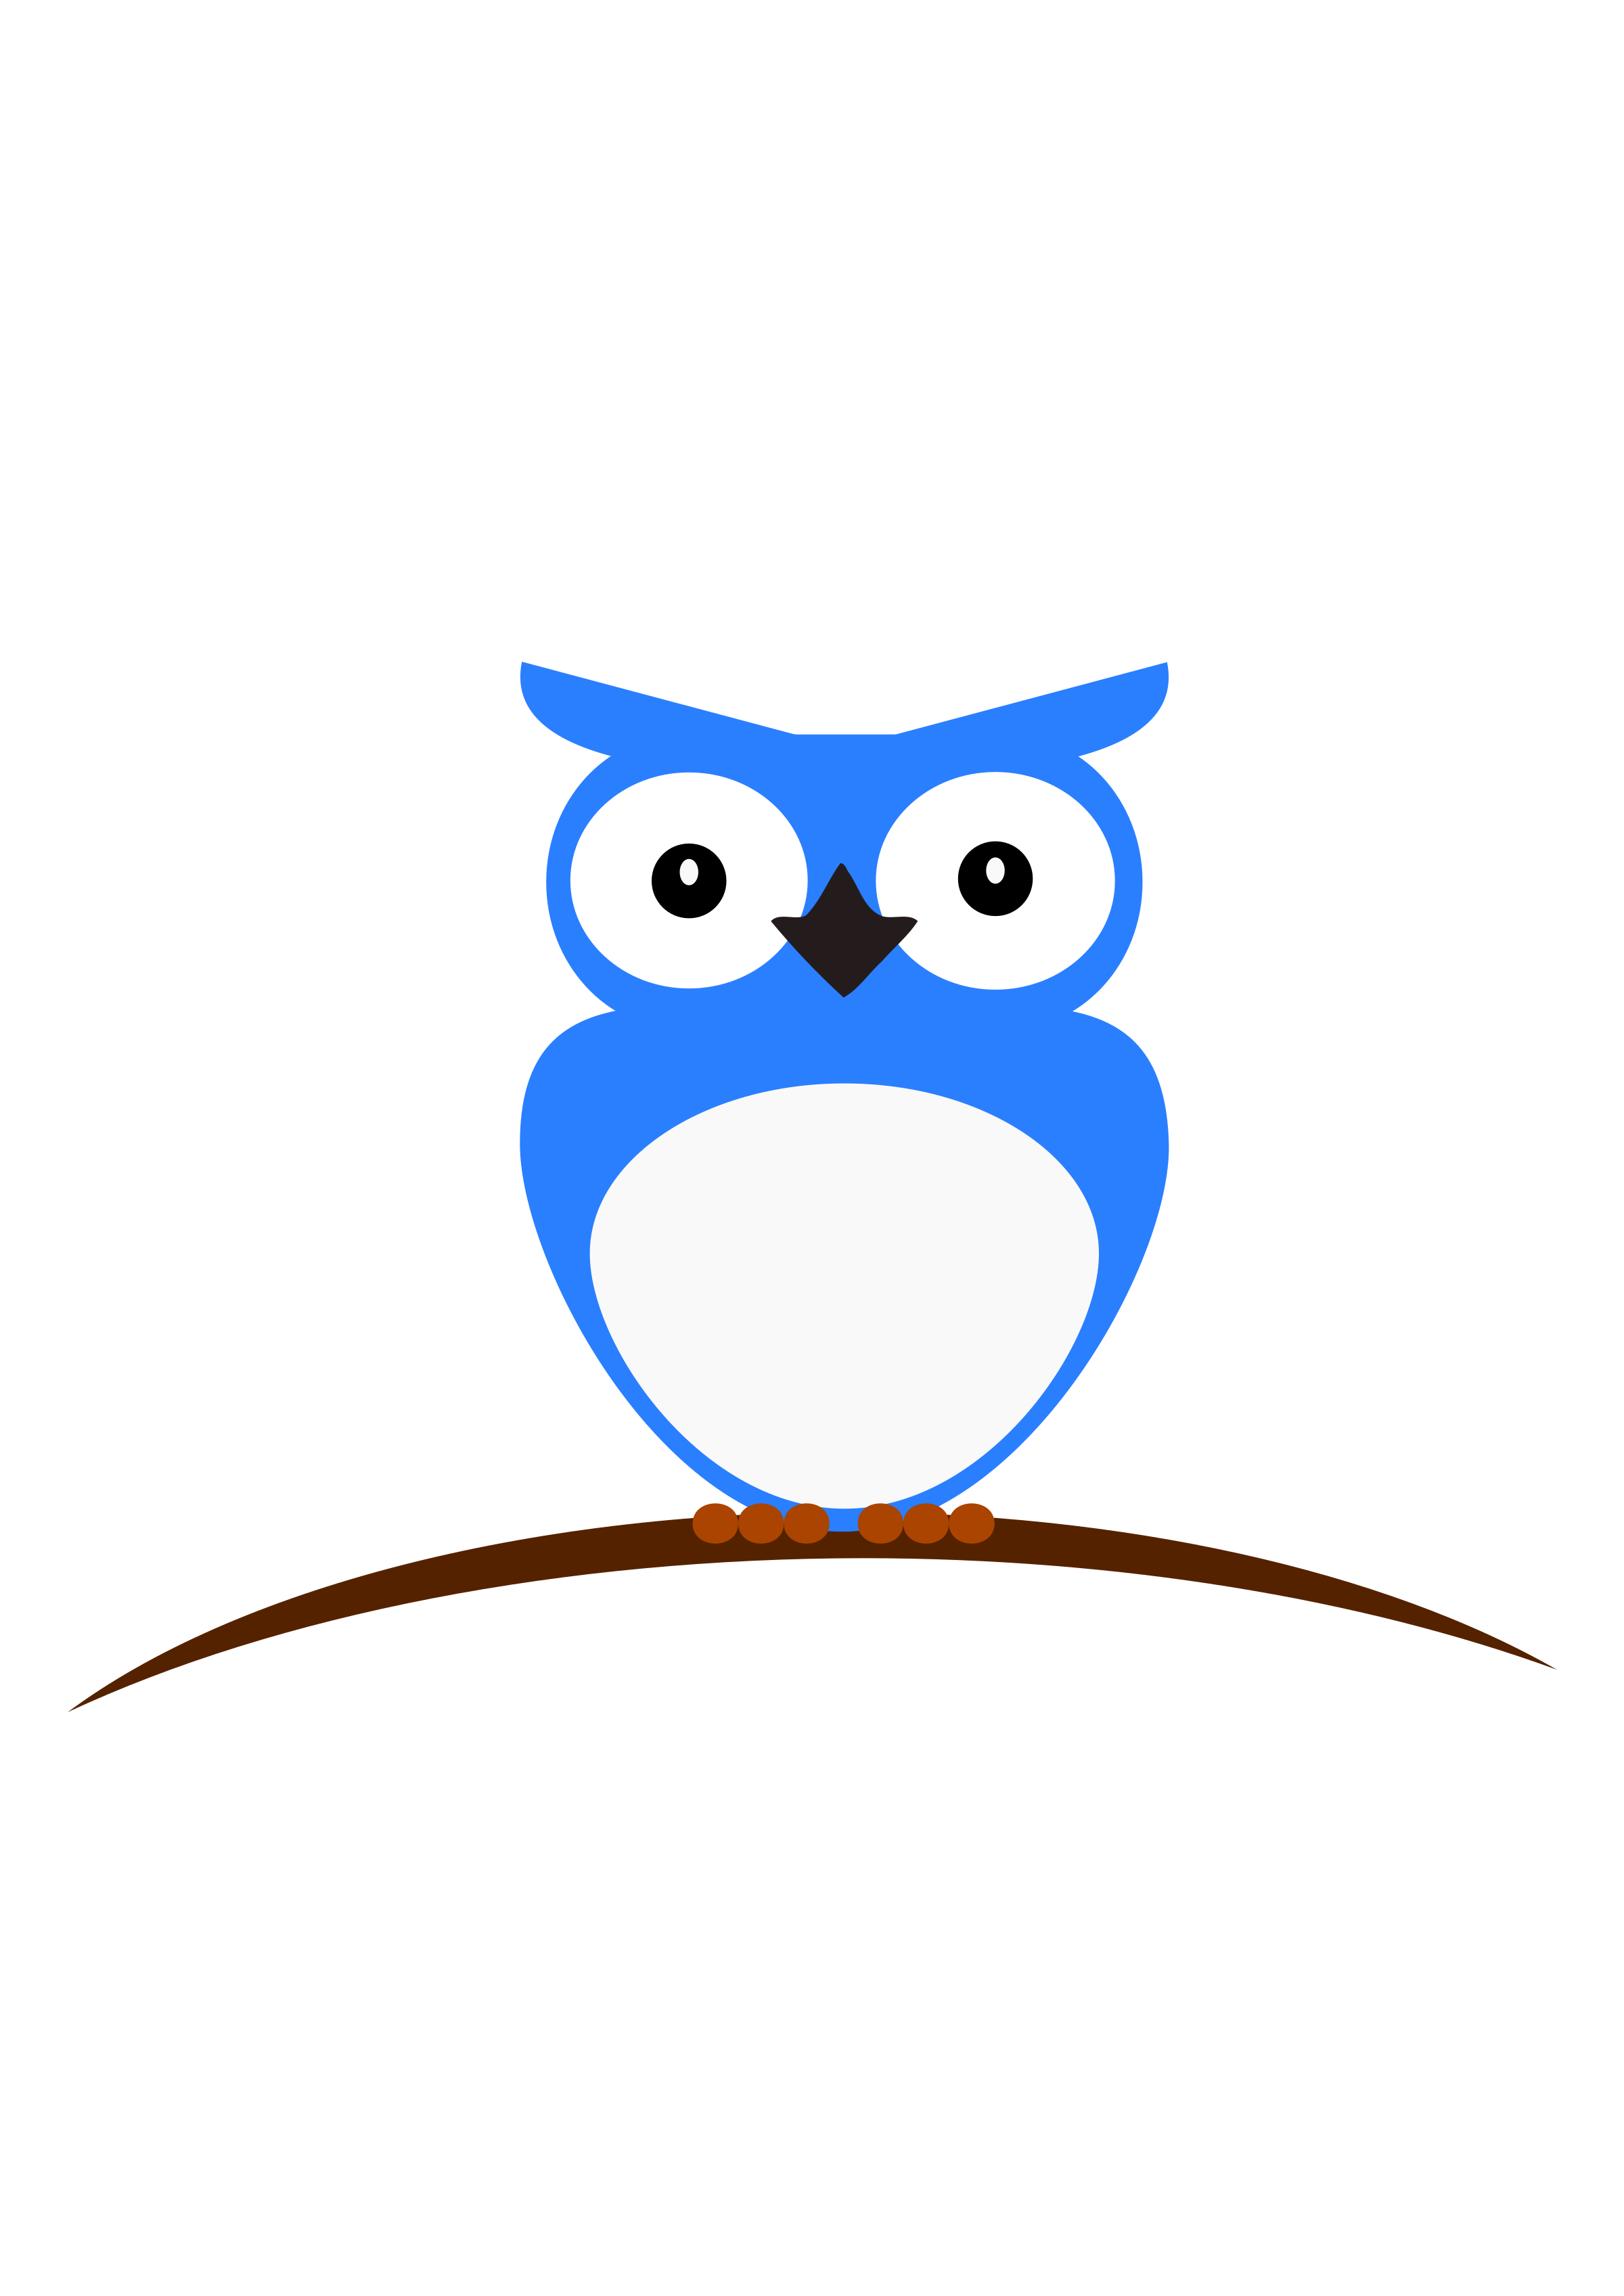 Blue & White Owl by Avasz